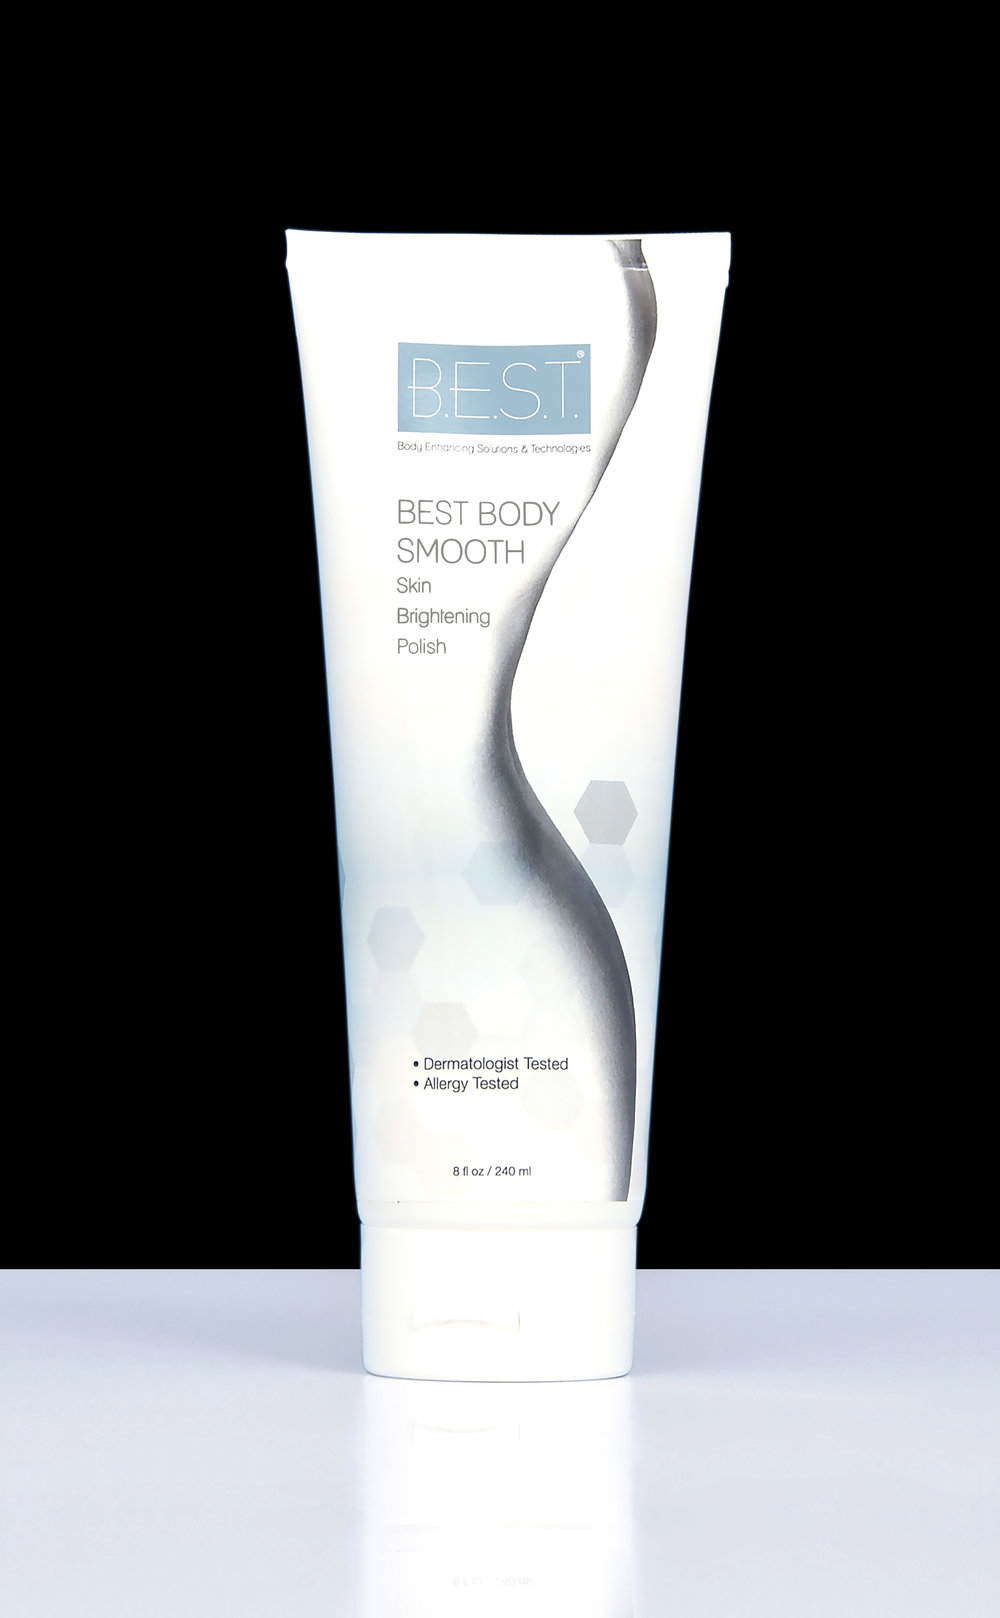 BEST Body Smooth